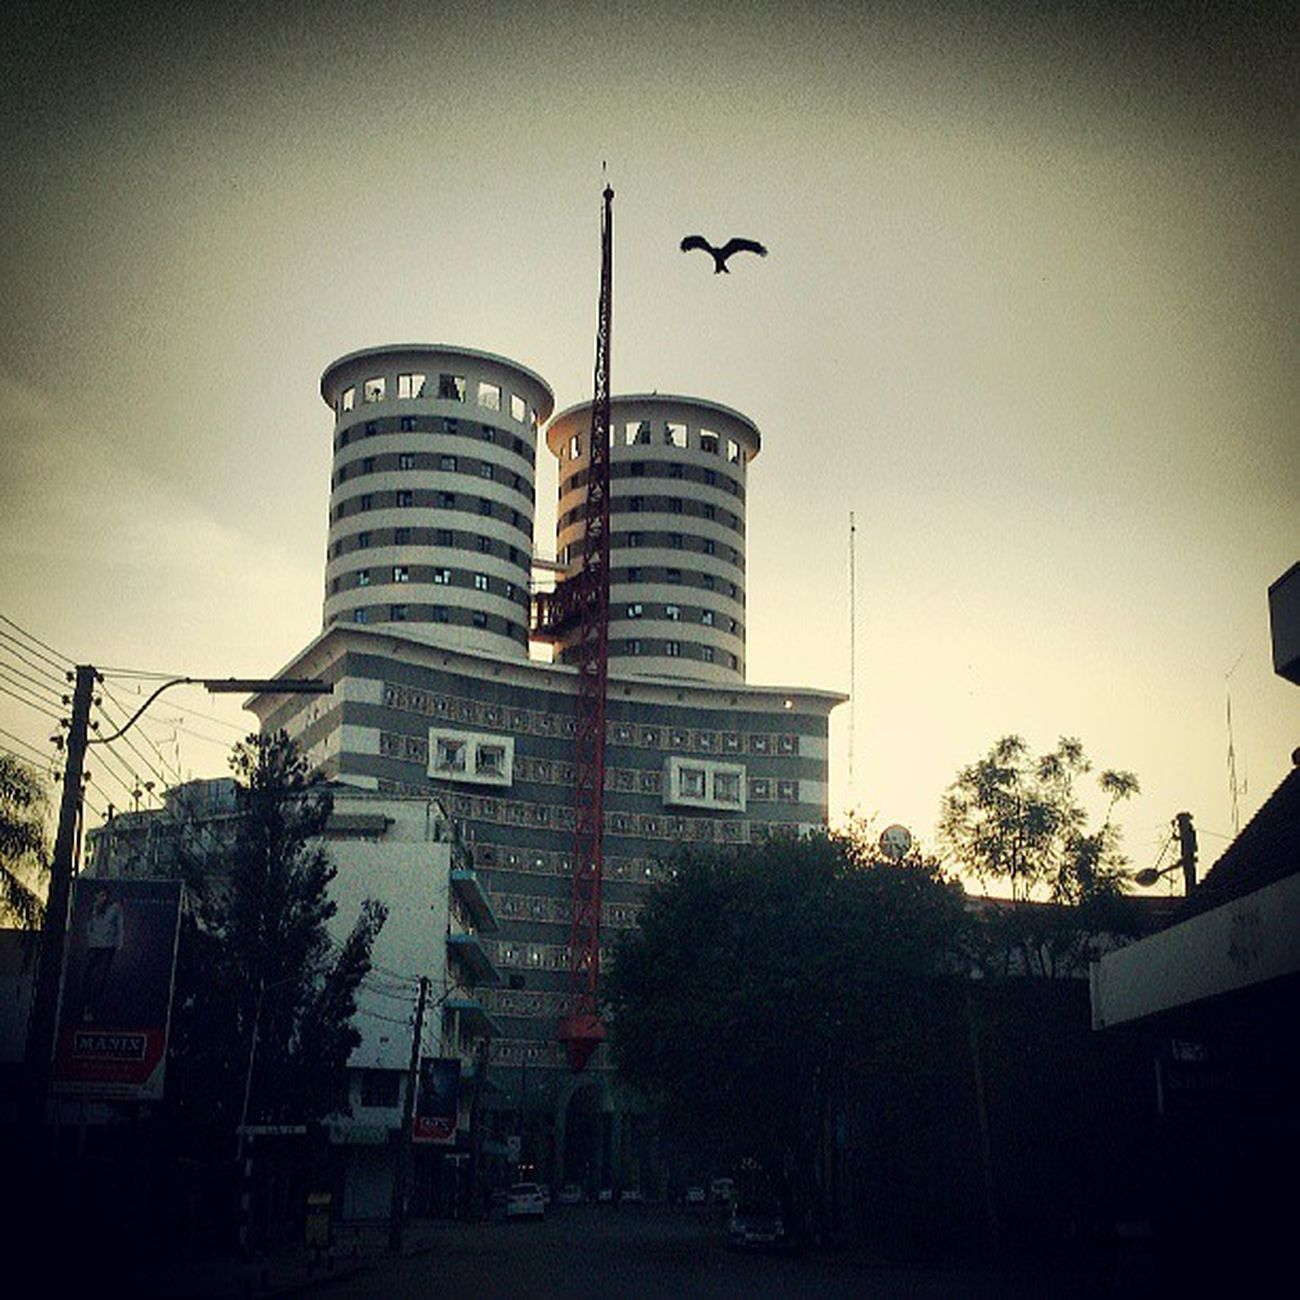 Goodmorning NationMediaHouse Sunrise Nairobi kenya bird webstagram statigram photography